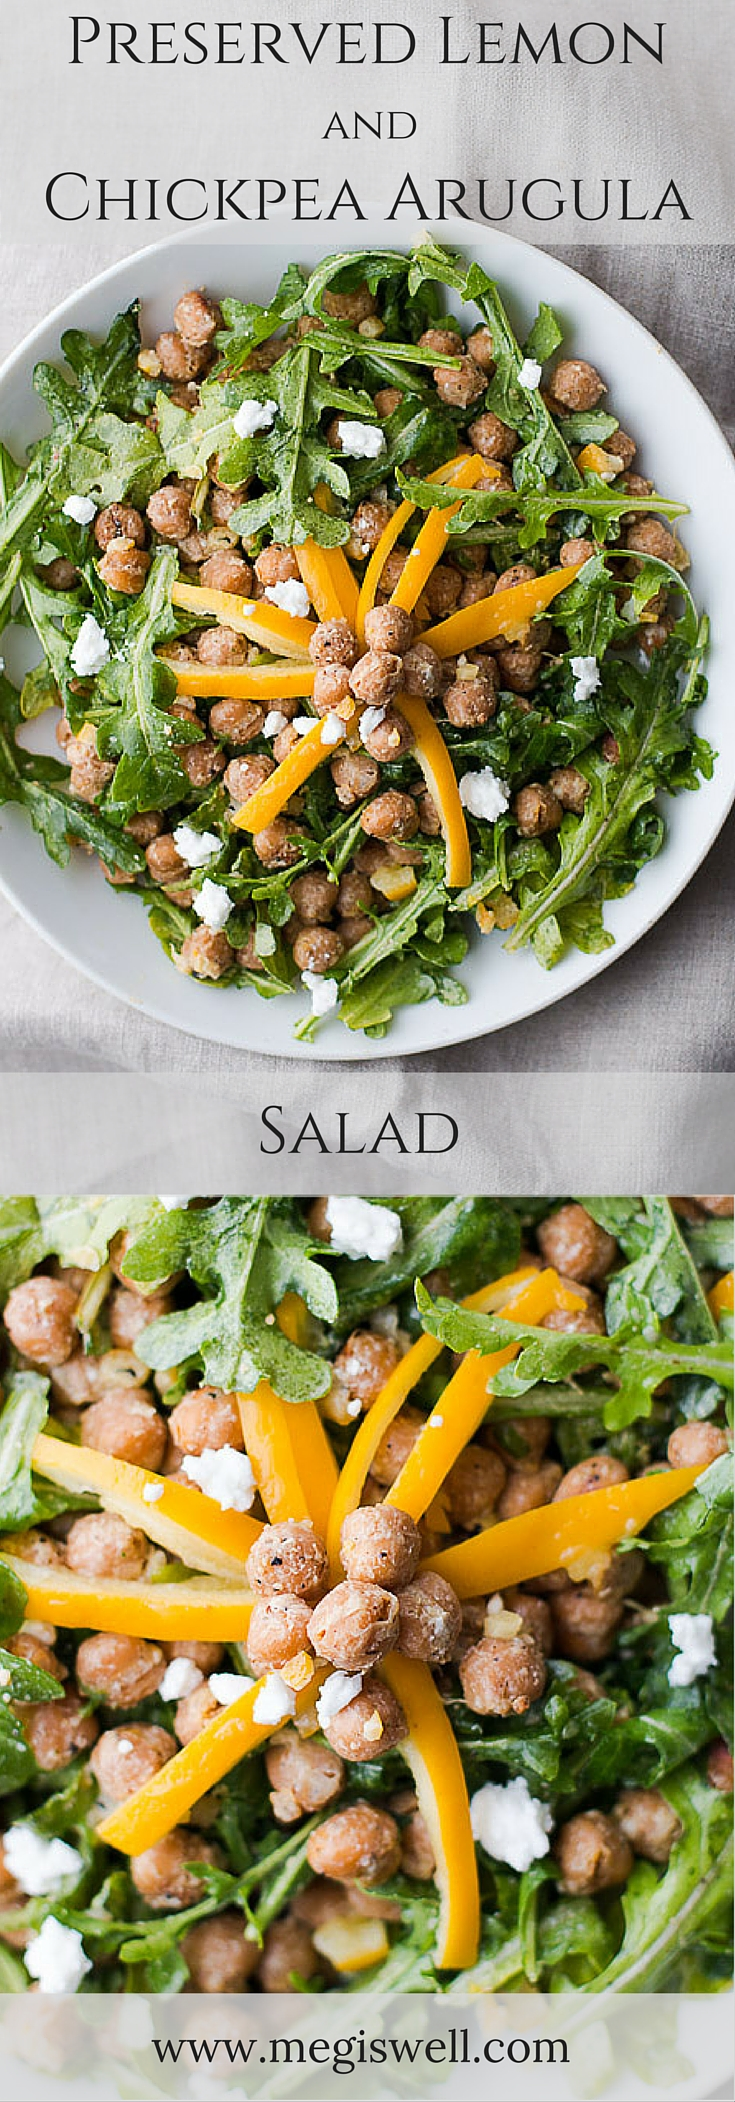 Seasoned and roasted chickpeas provide flavor and protein in this Preserved Lemon and Chickpea Arugula Salad while preserved lemons and feta lightly coat the arugula for a healthy and quick salad. | www.megiswell.com